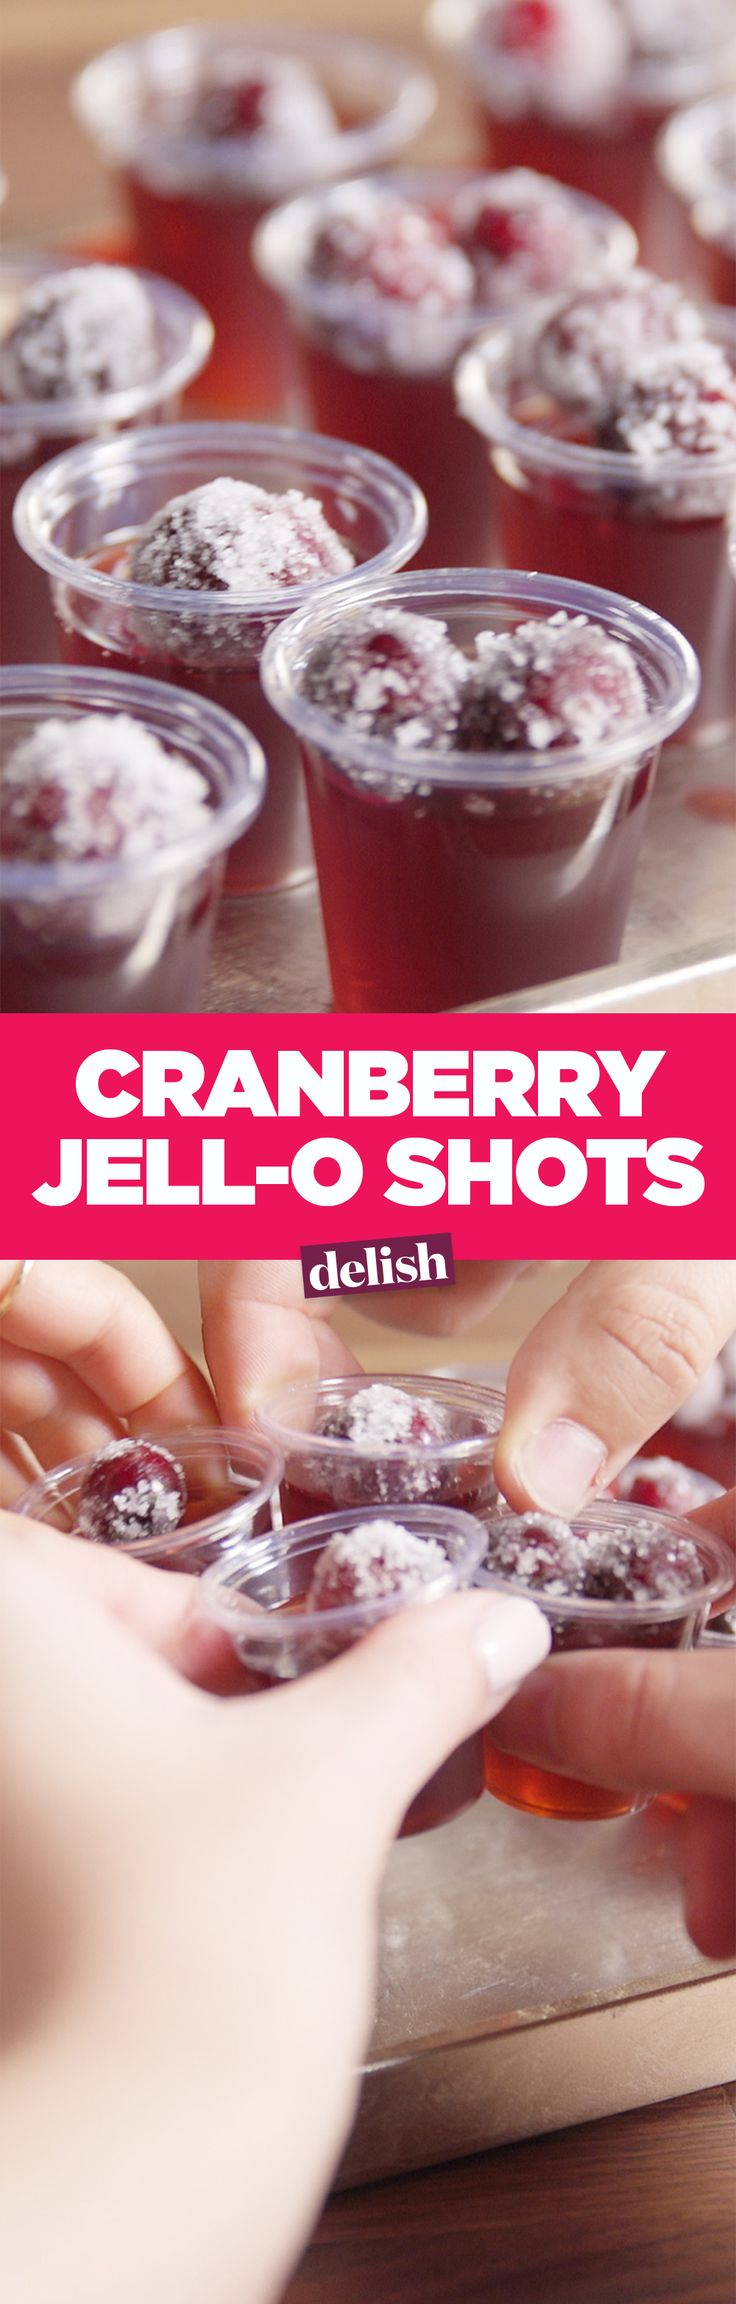 No Friendsgiving is complete without these Cranberry Jell-O Shots. Get the recipe on Delish.com.